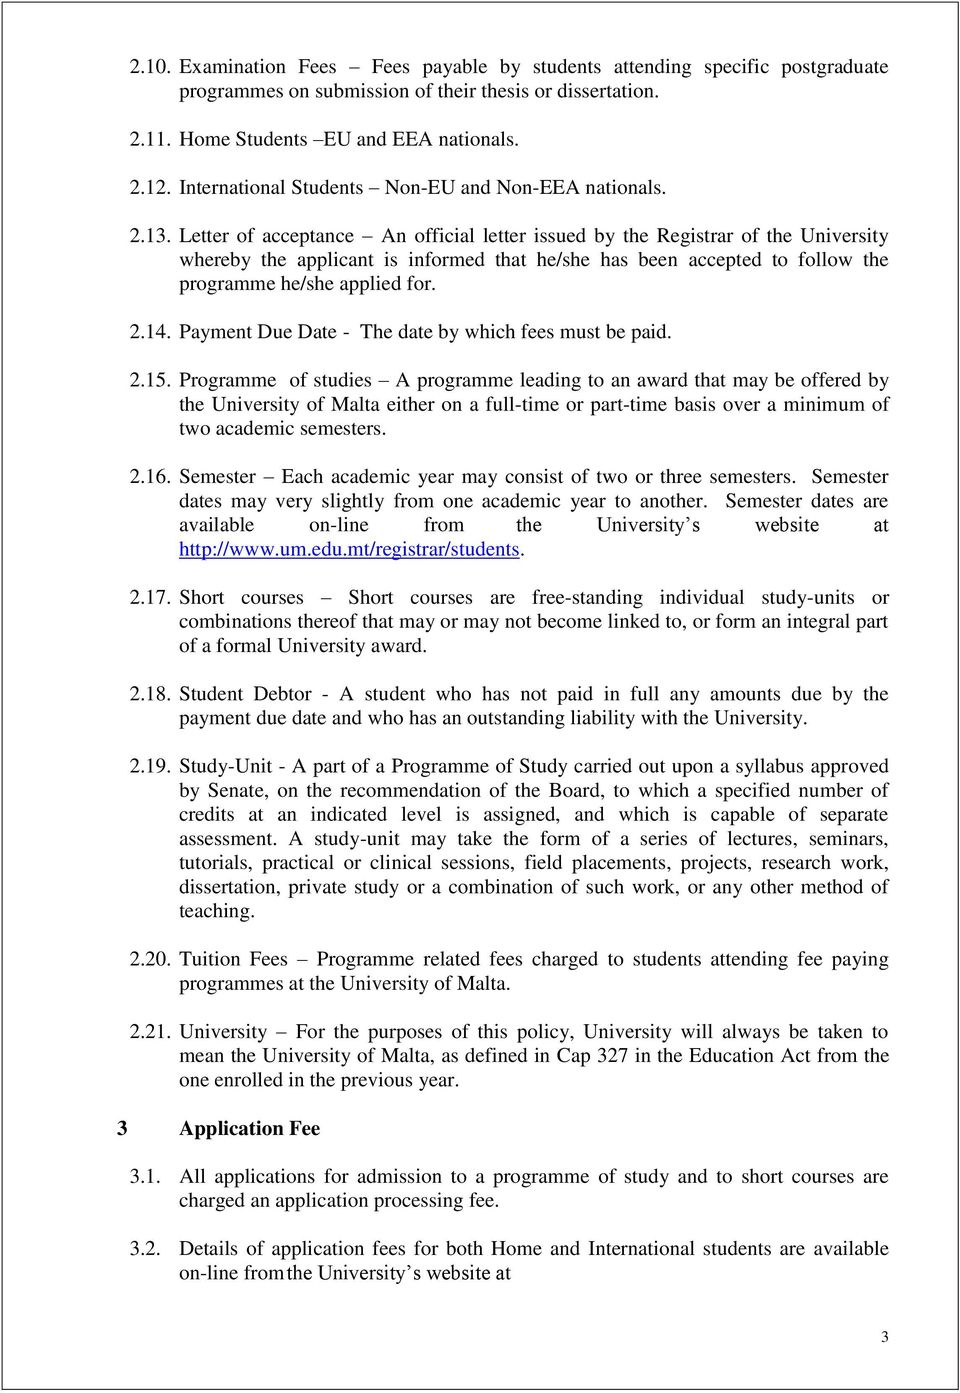 Letter of acceptance An official letter issued by the Registrar of the University whereby the applicant is informed that he/she has been accepted to follow the programme he/she applied for. 2.14.